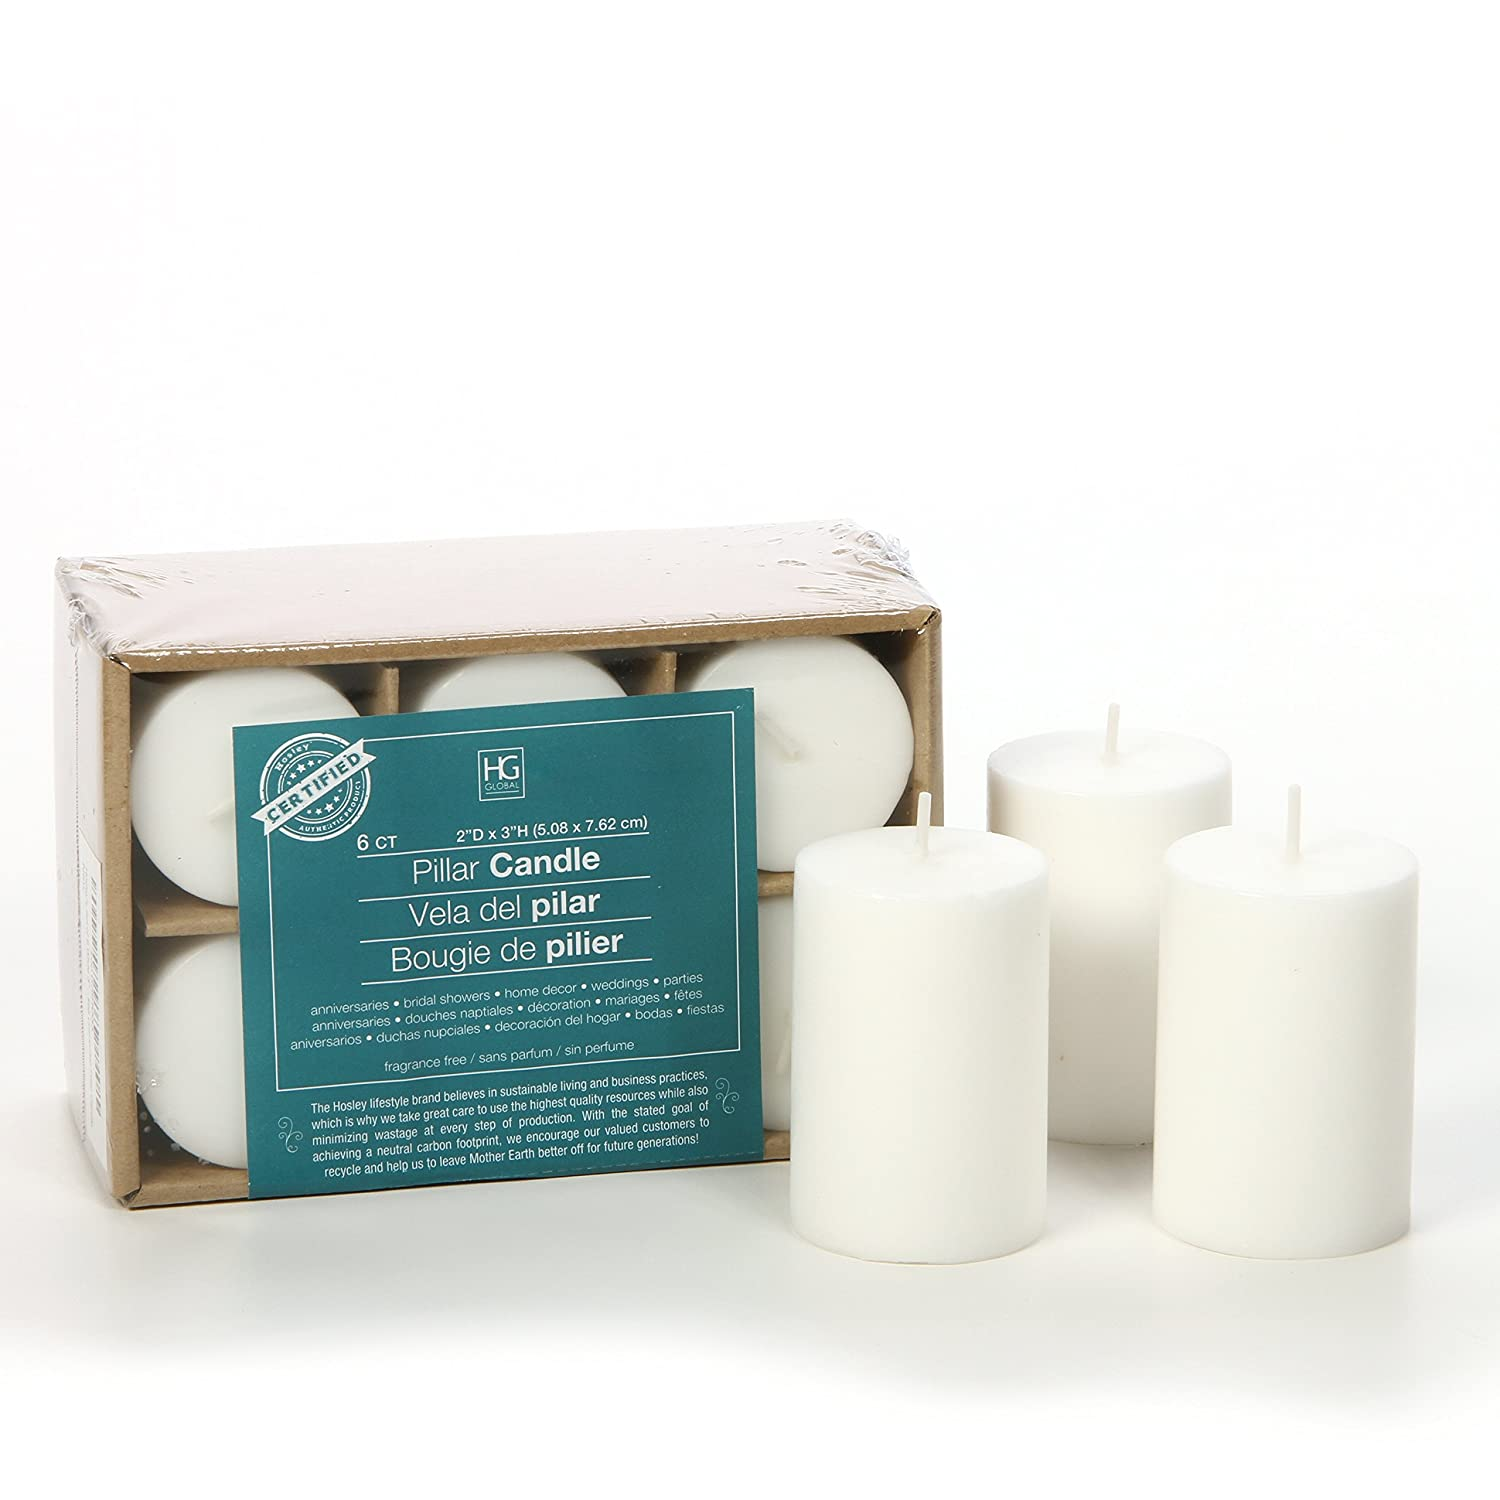 Hosley 3 High Pillar Candles, SET OF 6. WHITE, Unscented. Bulk Buy, using a High Quality Wax Blend. Ideal for Wedding, Emergency Lanterns, Spa, Aromatherapy, Party, Reiki, Candle Gardens HG Global FBA-G08902ON-1-EA